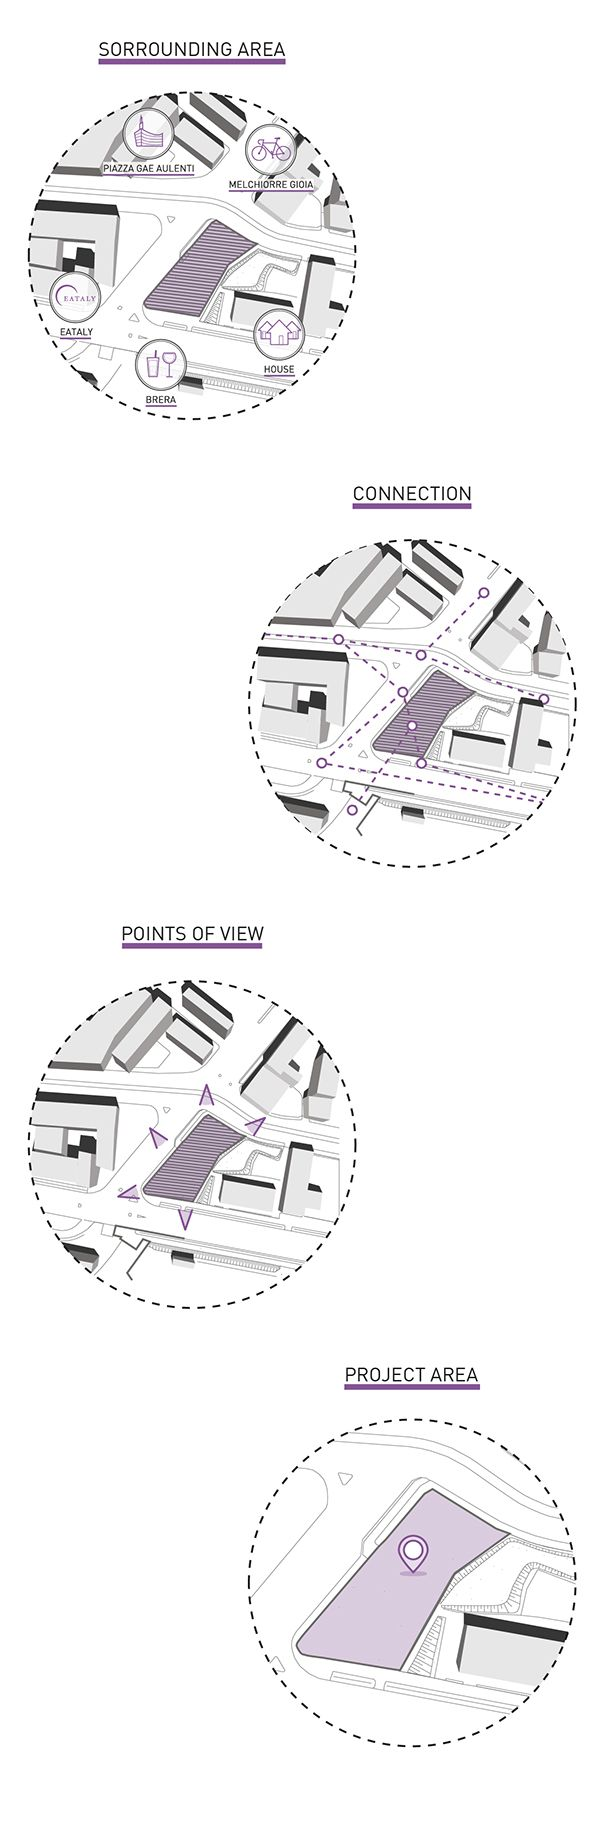 Architecture clipart system analysis  Top 25+ Final Site